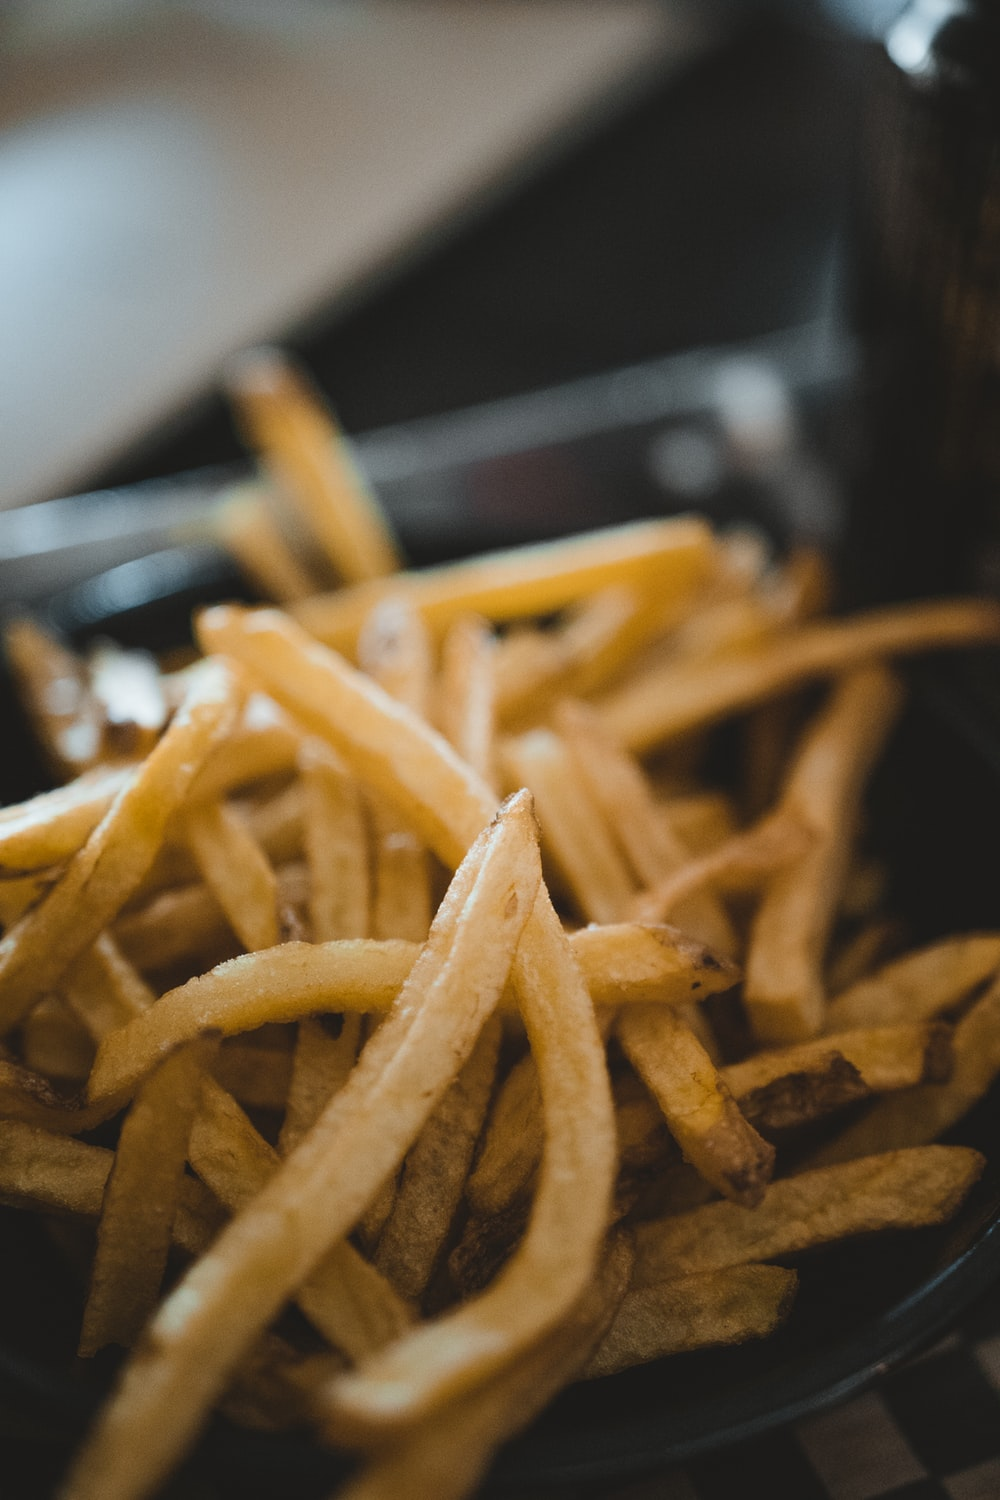 selective focus photograph of fries